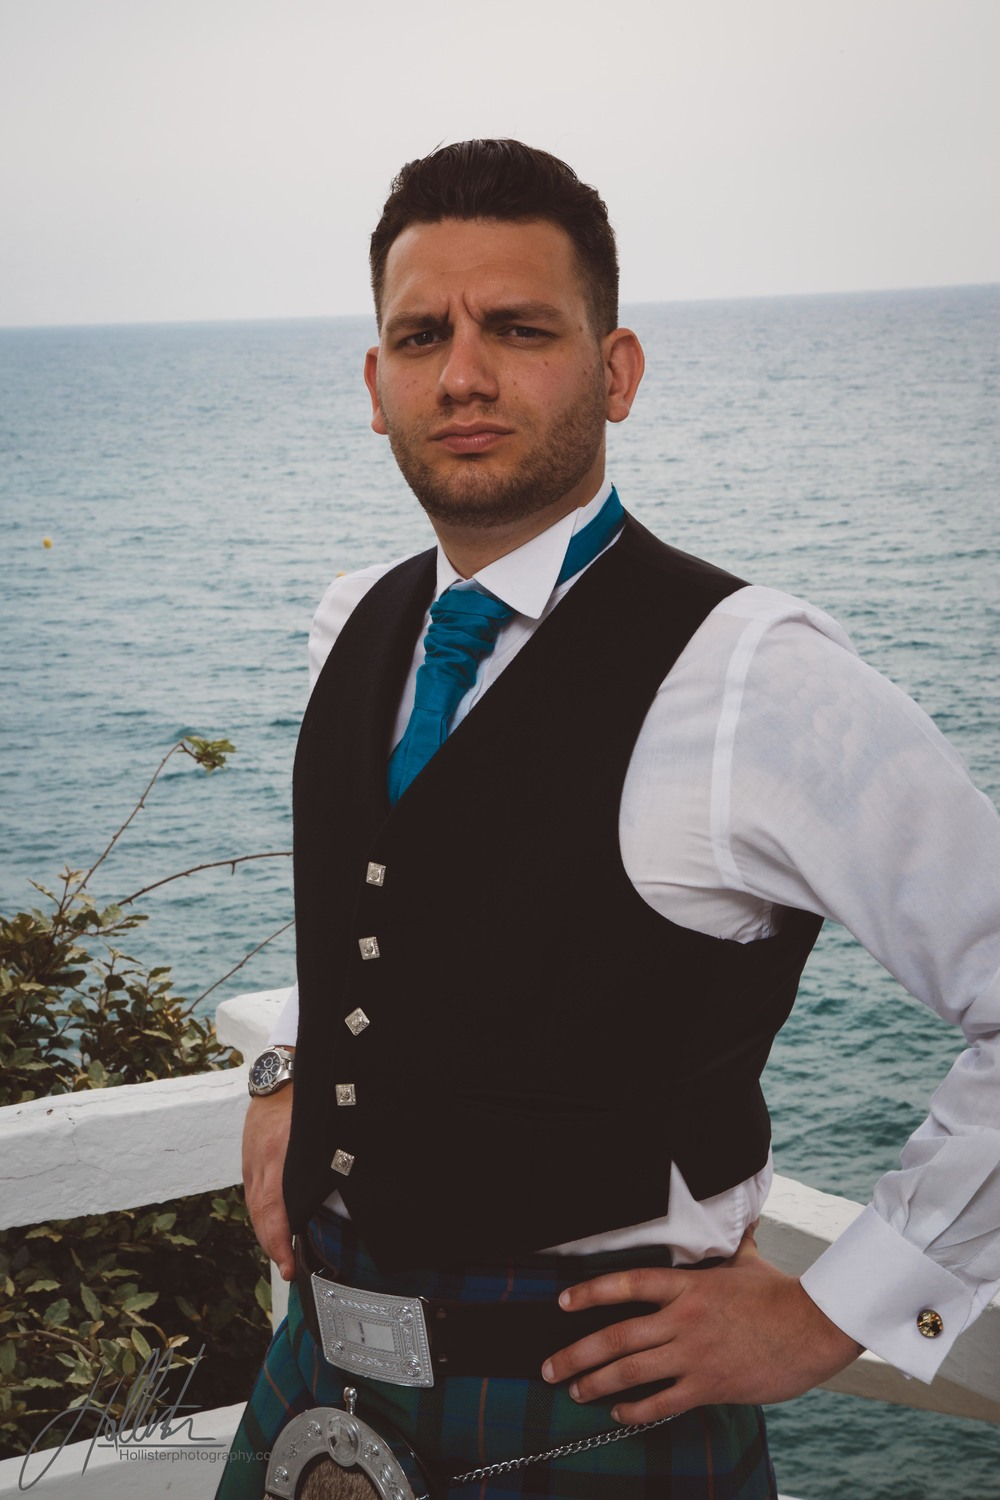 Stu and Firons Gibraltan Wedding june 6th 2015  WATERMARKED-93.jpg